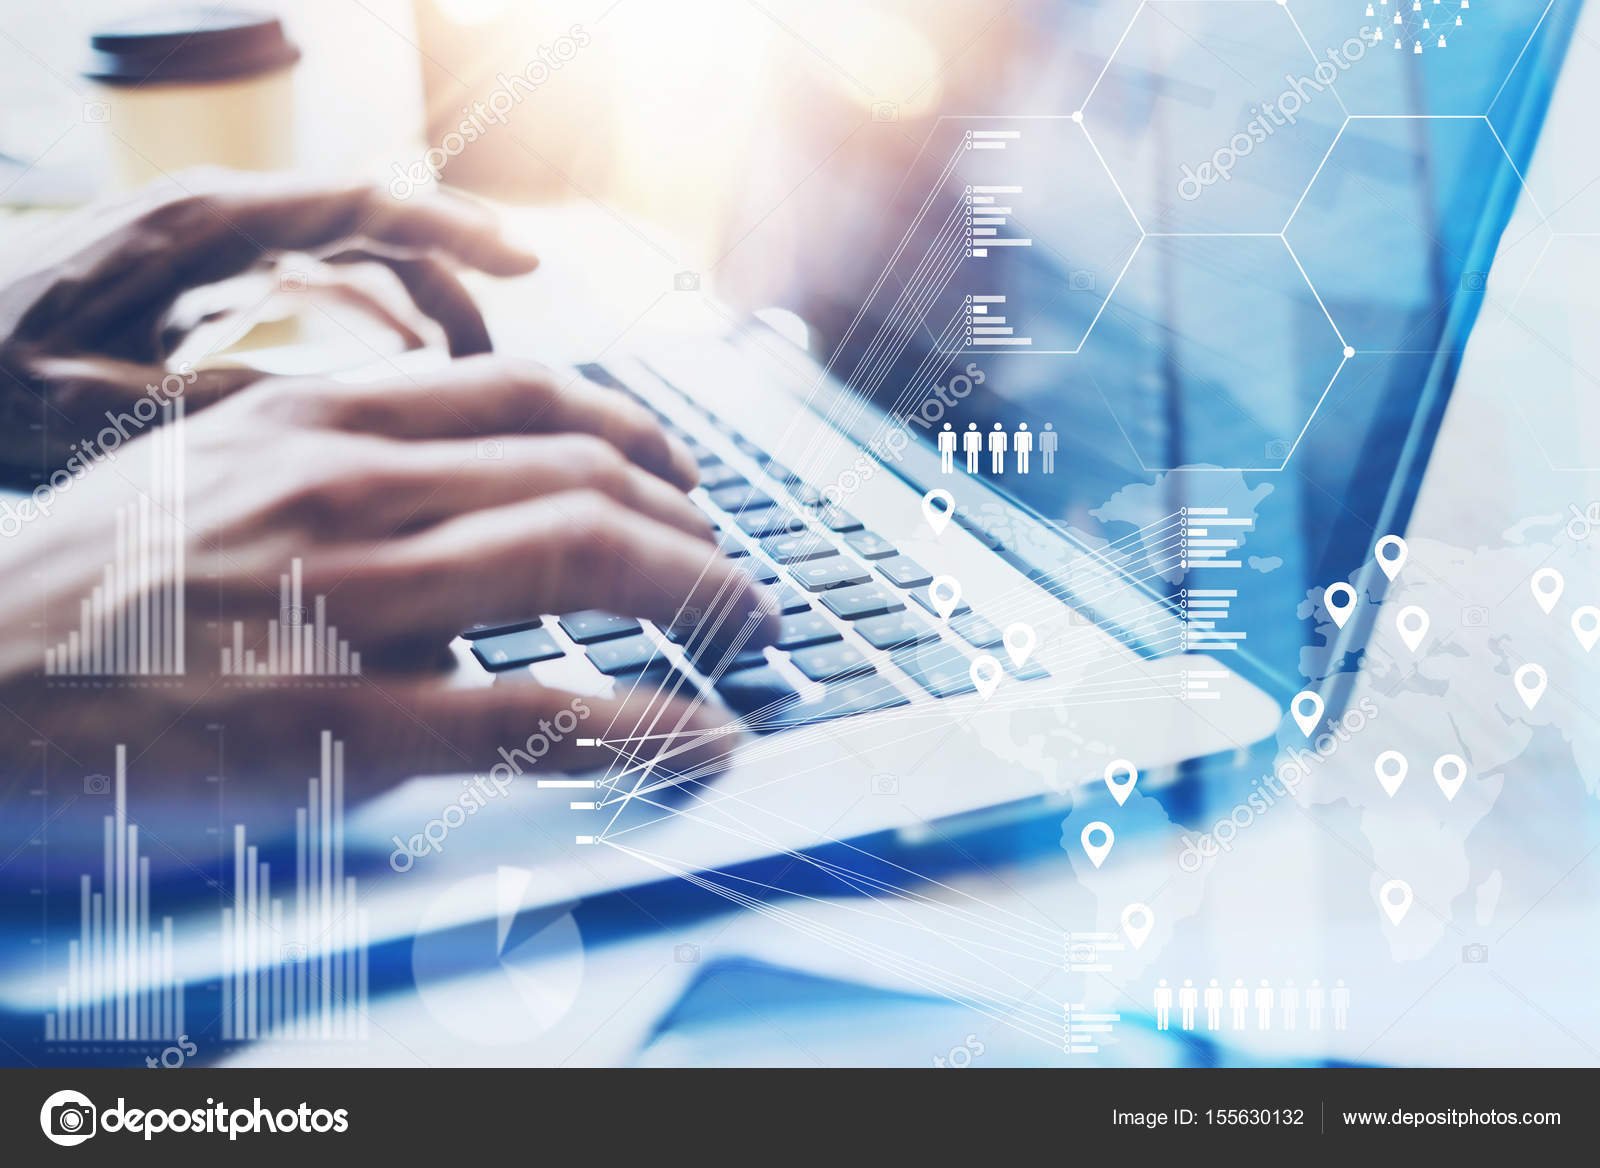 Closeup View Of Male Hand Typing On Laptop Keyboardbusinessman Keyboard Diagram Working At Office Modern Notebookconcept Digital Diagramgraph Interfacesvirtual